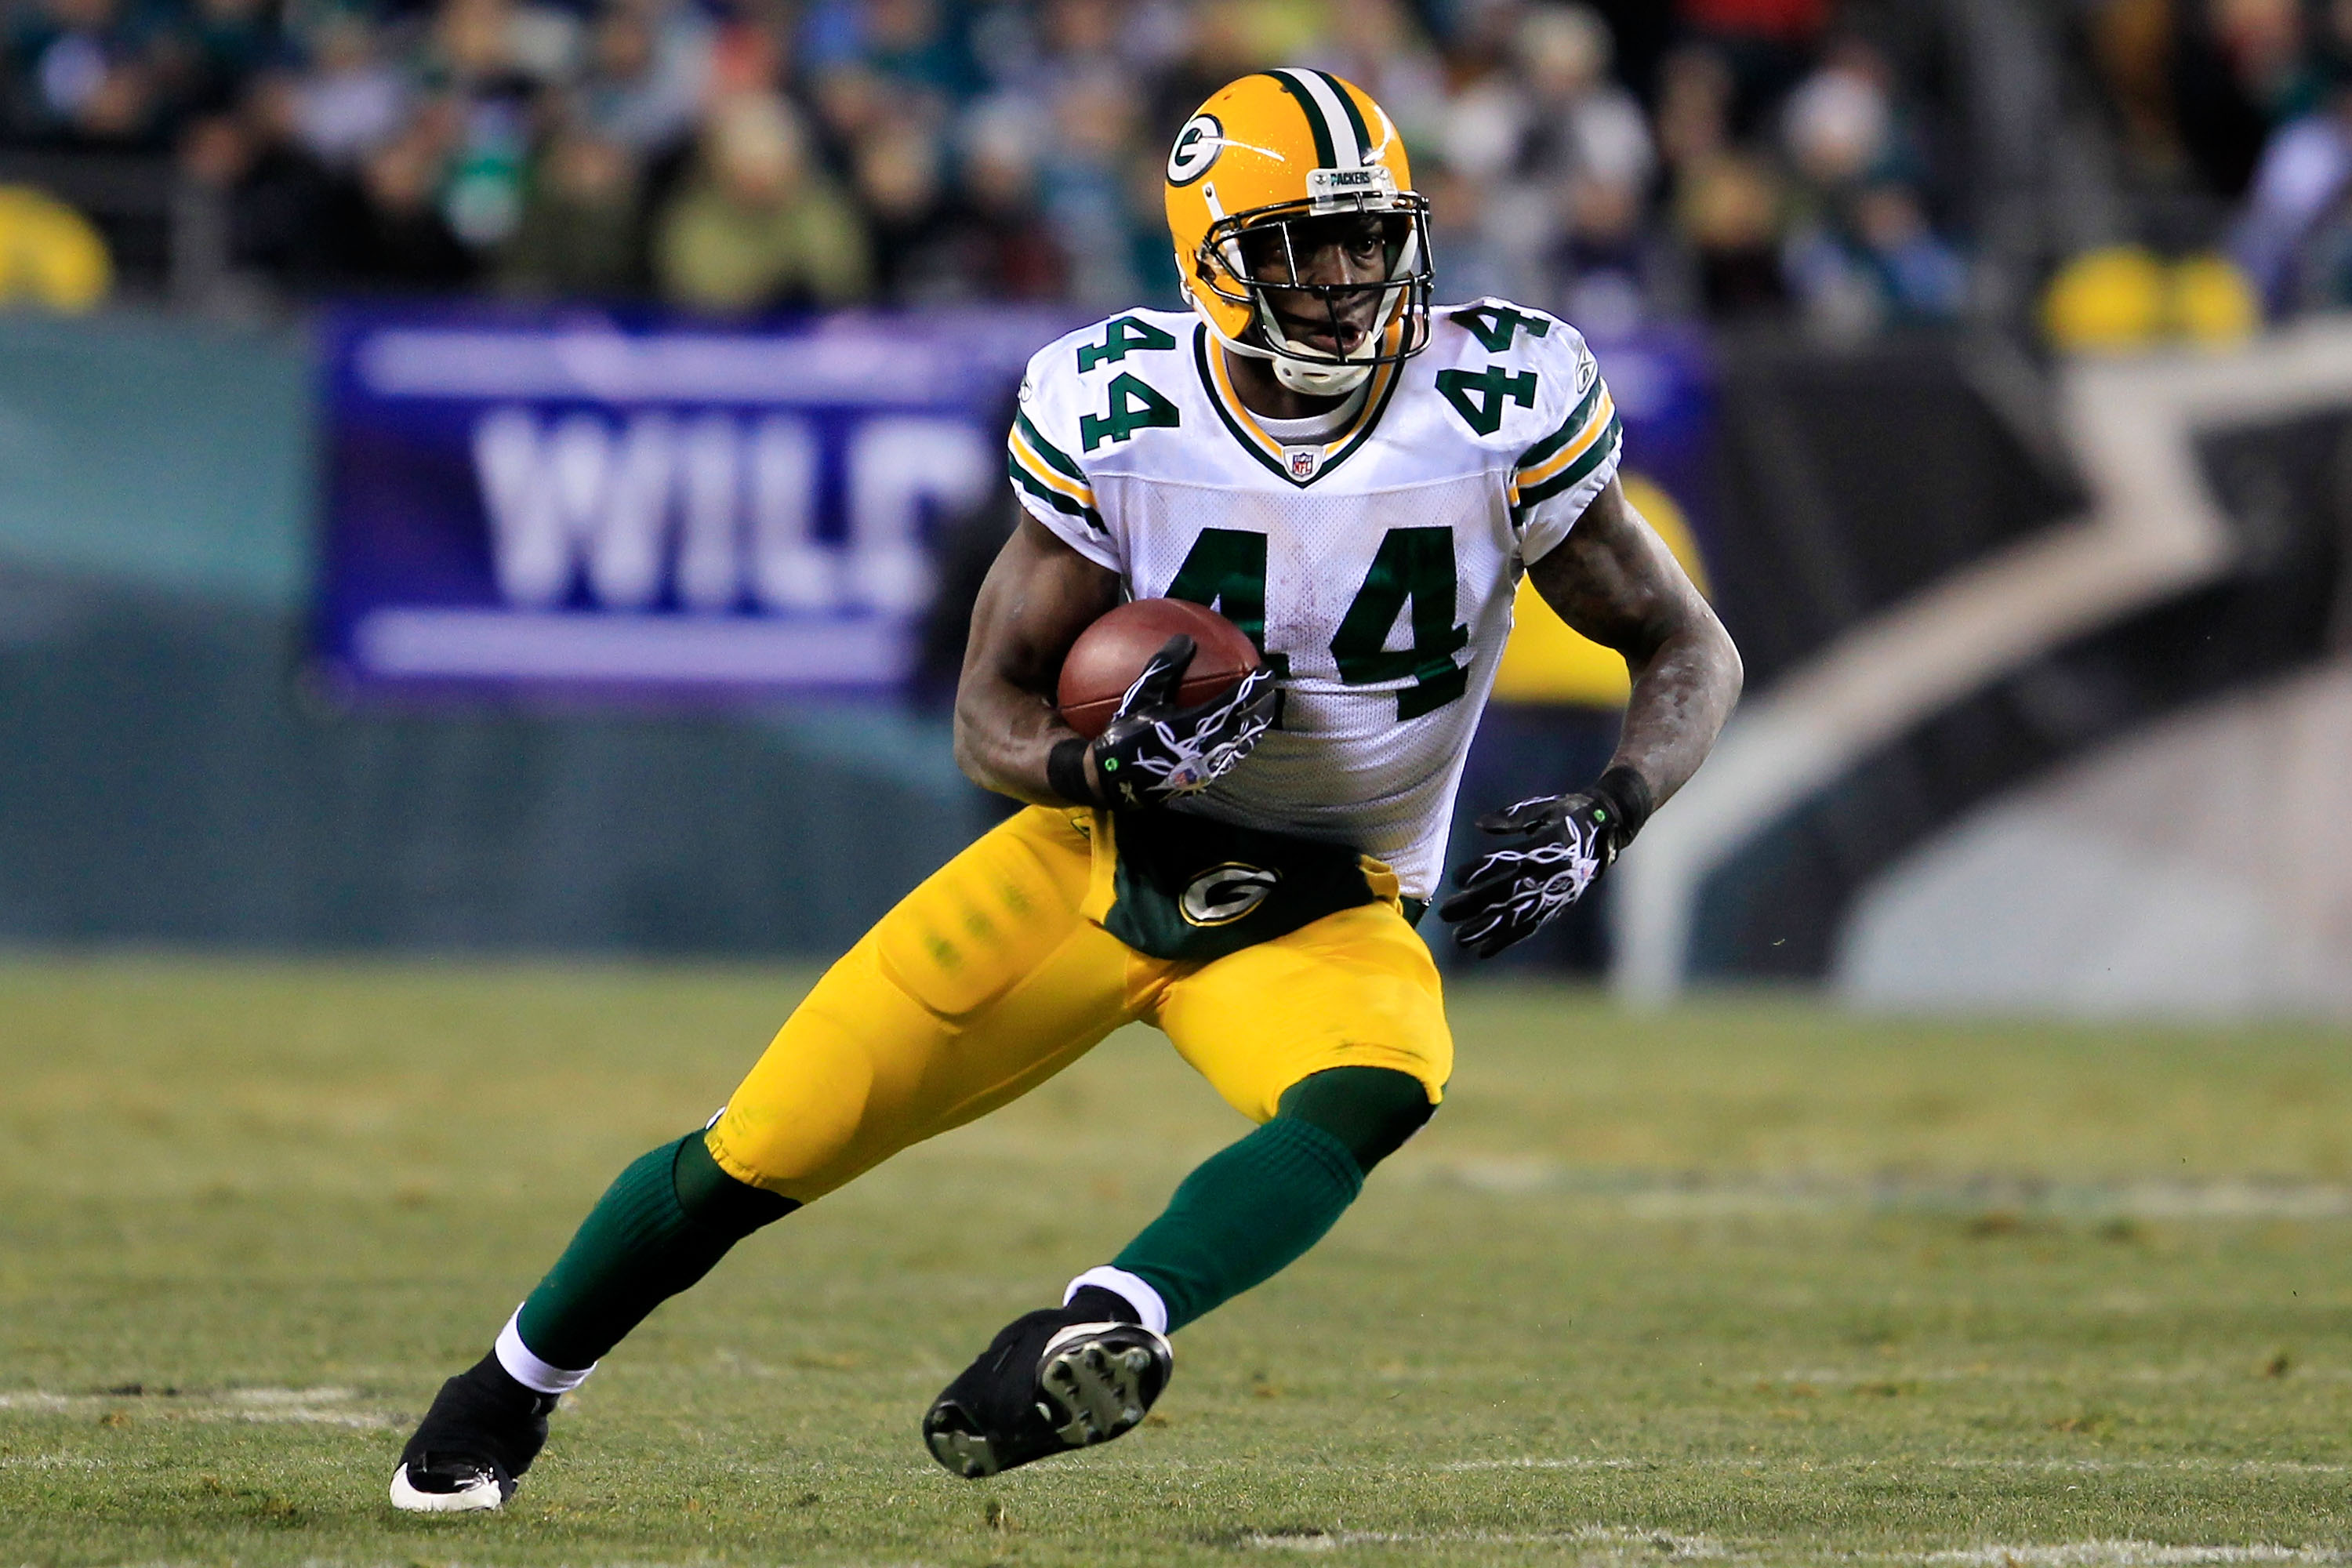 PHILADELPHIA, PA - JANUARY 09:  James Starks #44 of the Green Bay Packers runs down field against the Philadelphia Eagles during the 2011 NFC wild card playoff game at Lincoln Financial Field on January 9, 2011 in Philadelphia, Pennsylvania.  (Photo by Ch